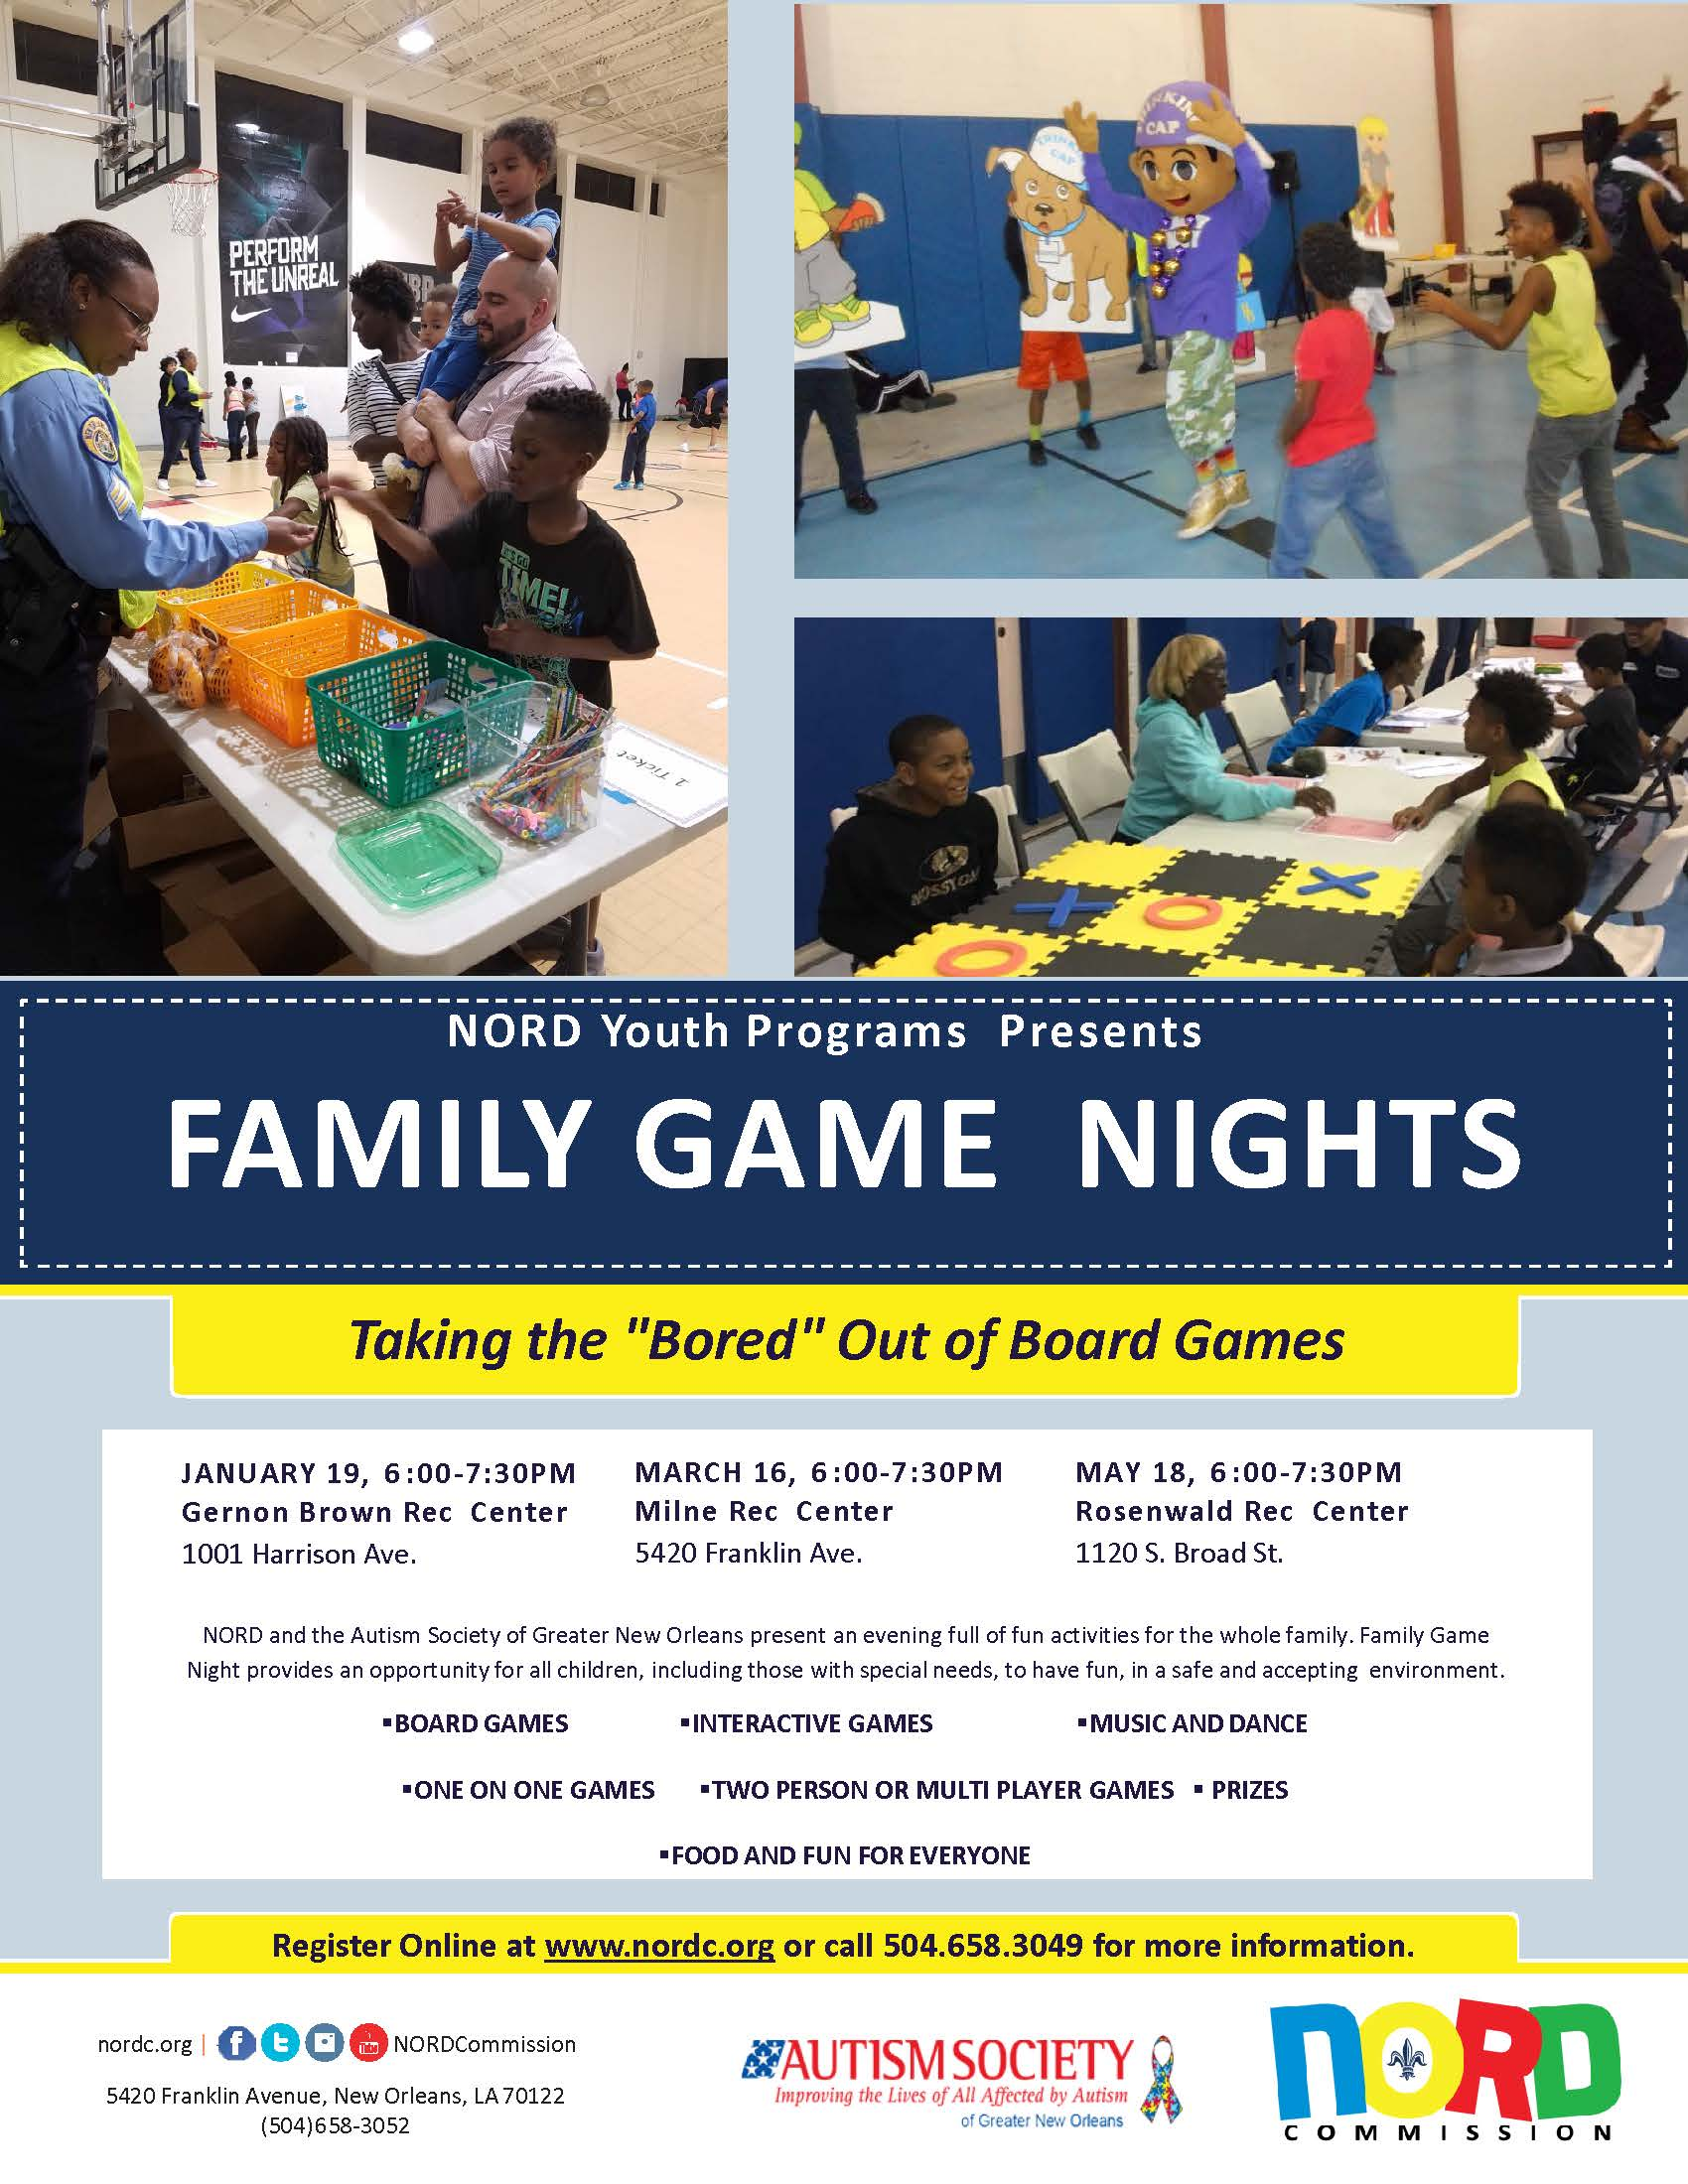 NORDC And The Autism Society Of Greater New Orleans Present An Evening Full Fun Activities For Whole Family Game Night Provides